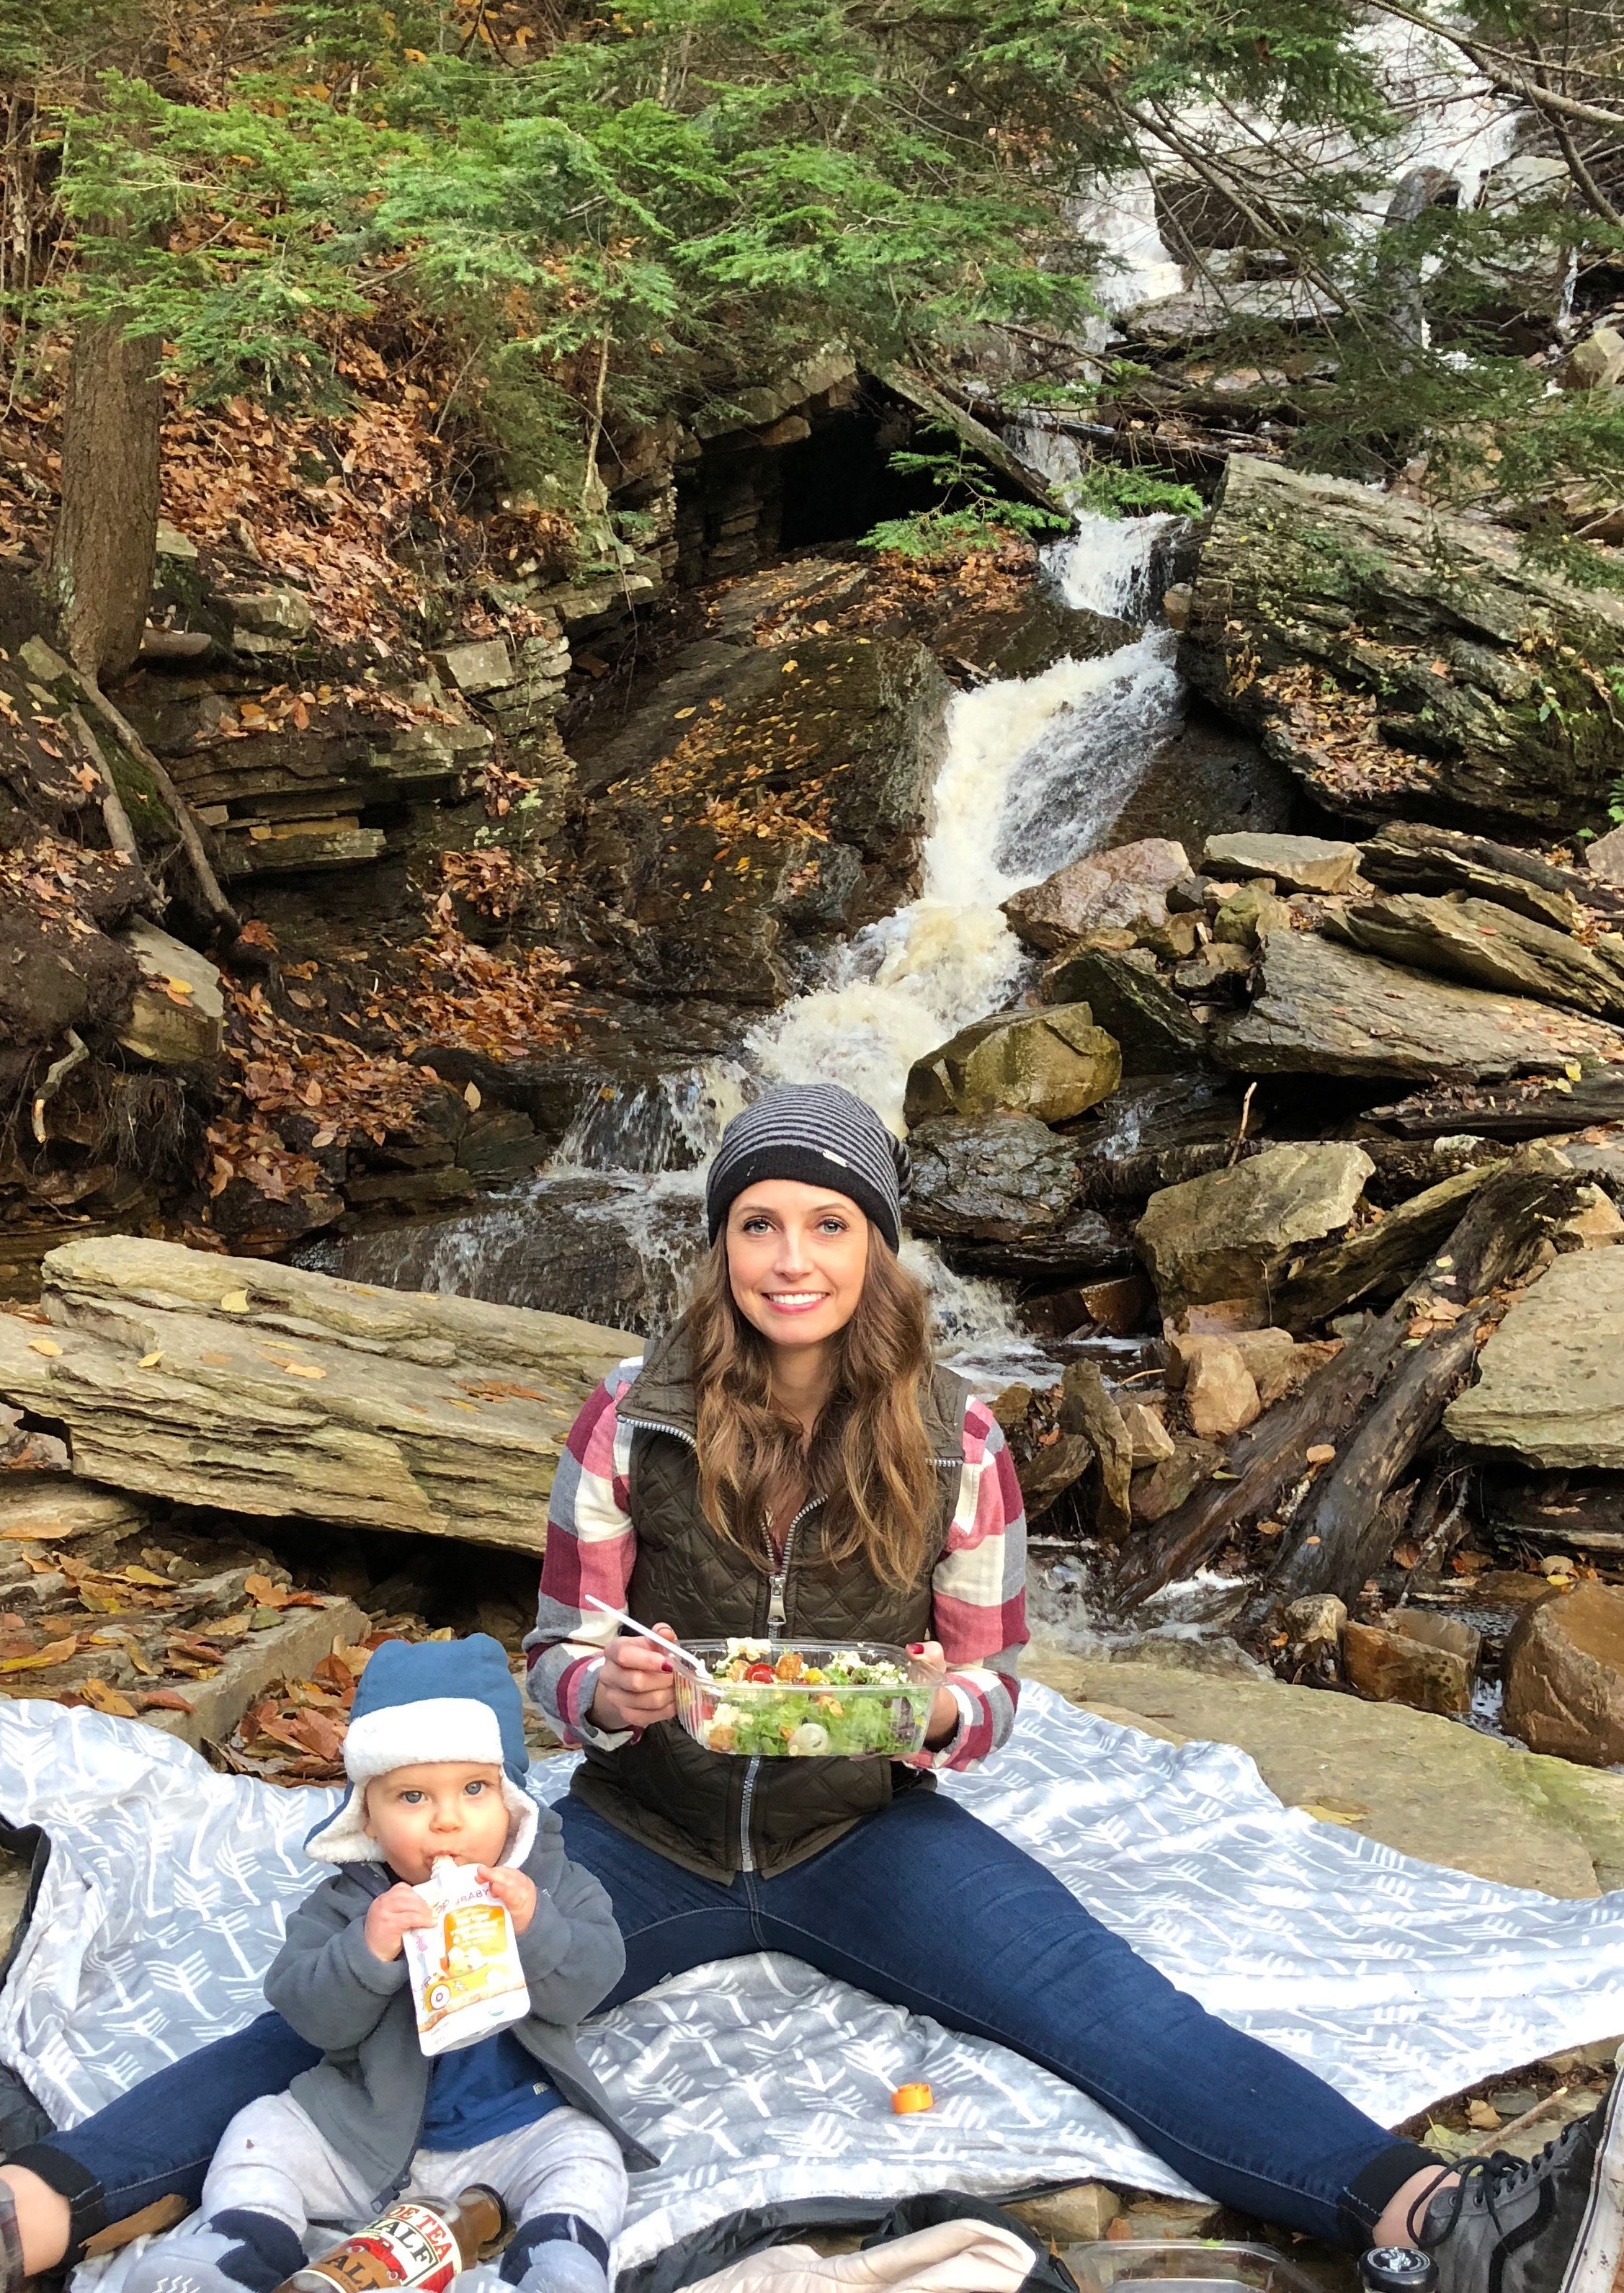 eating lunch at lye brook falls waterfall